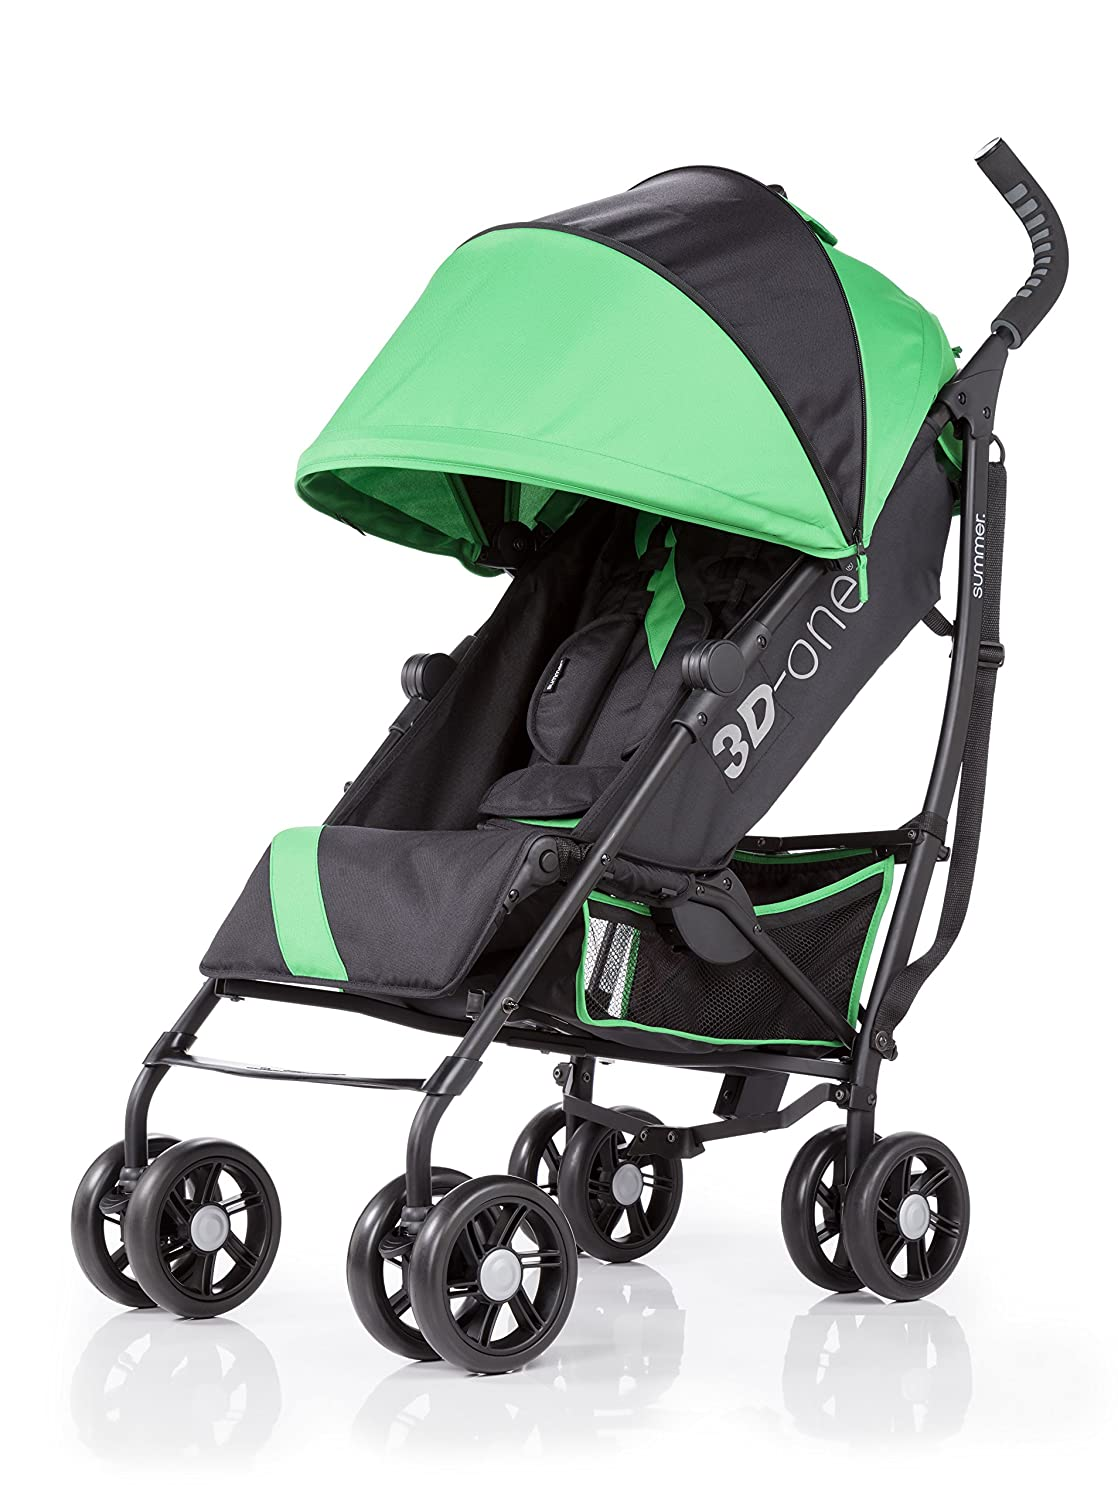 Summer Infant 3D One Convenience Stroller, Brilliant Green 21803